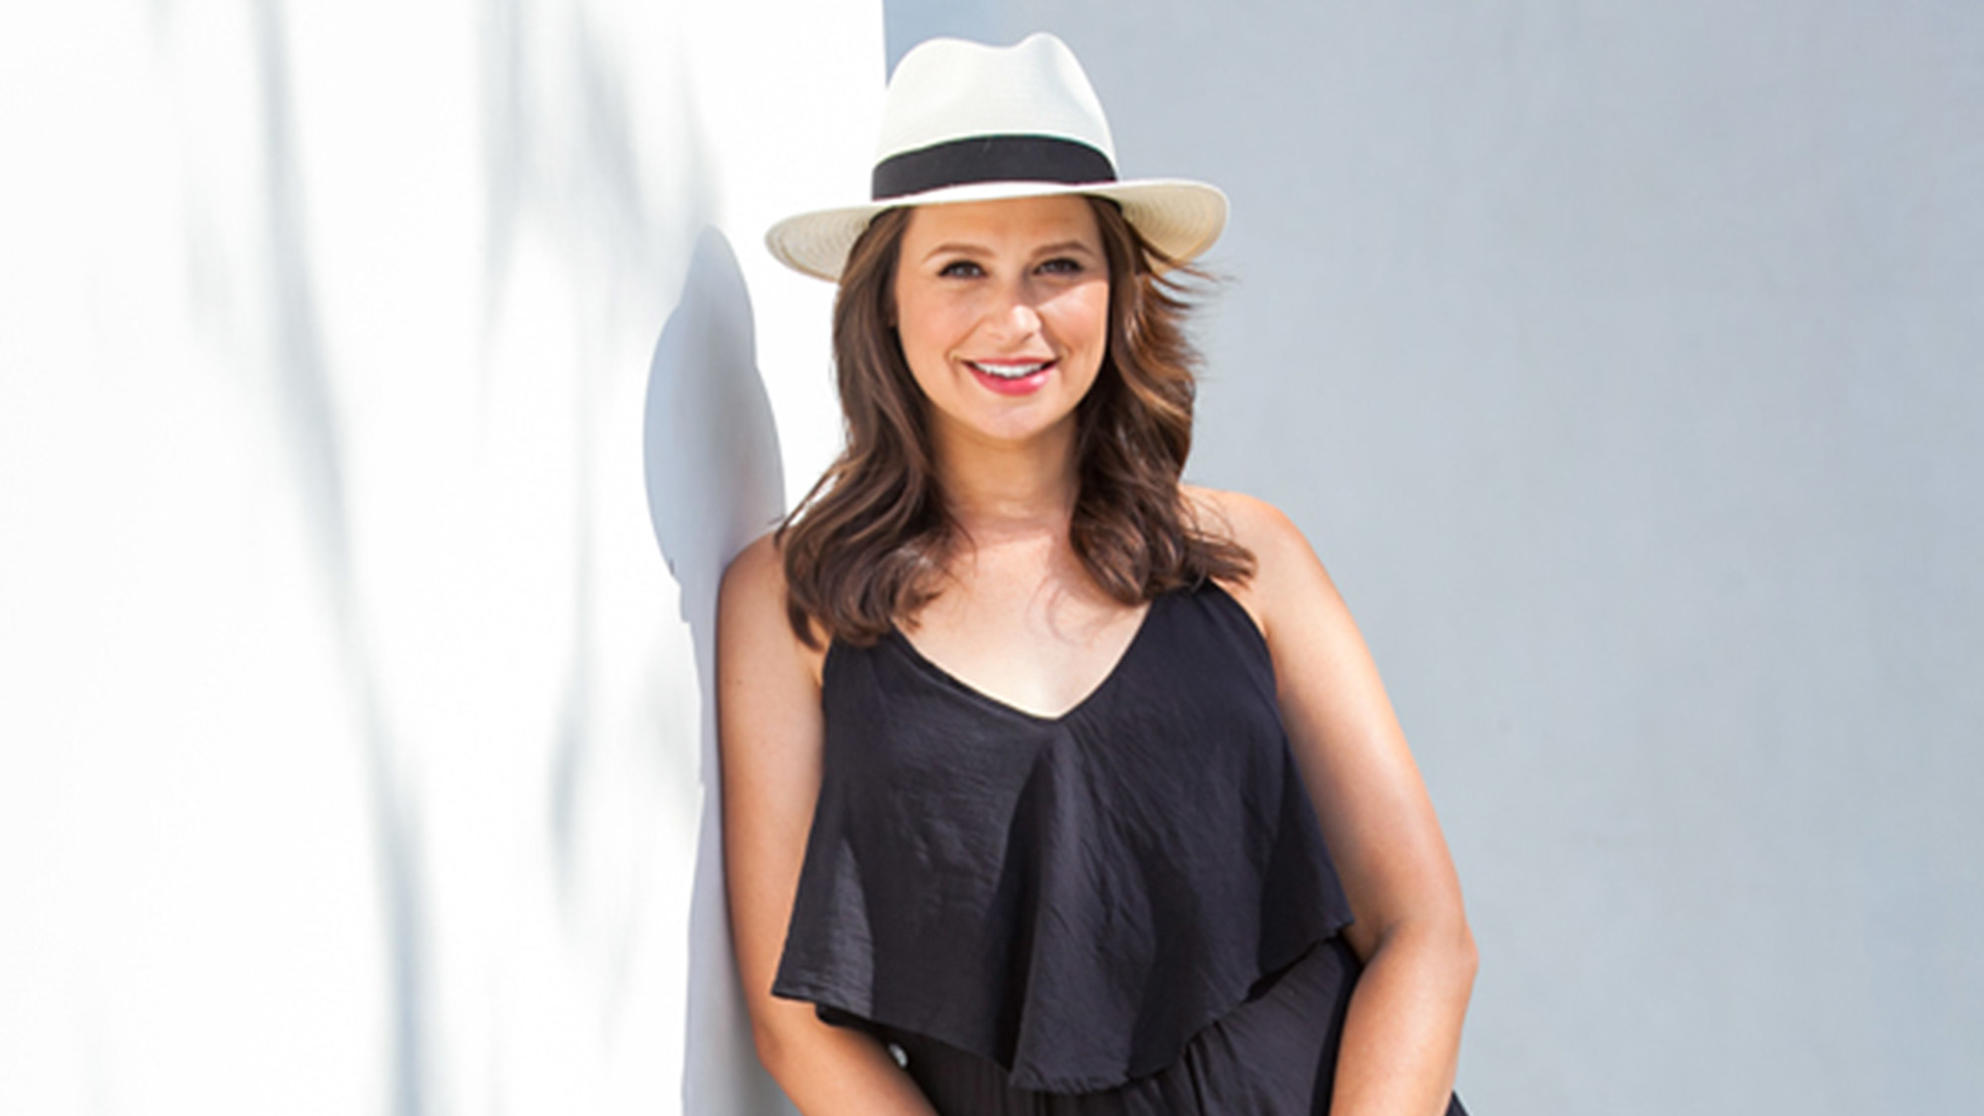 Scandal's Katie Lowes on How She Handled Psoriasis Diagnosis: 'I Felt Incredibly Embarrassed and Ashamed'